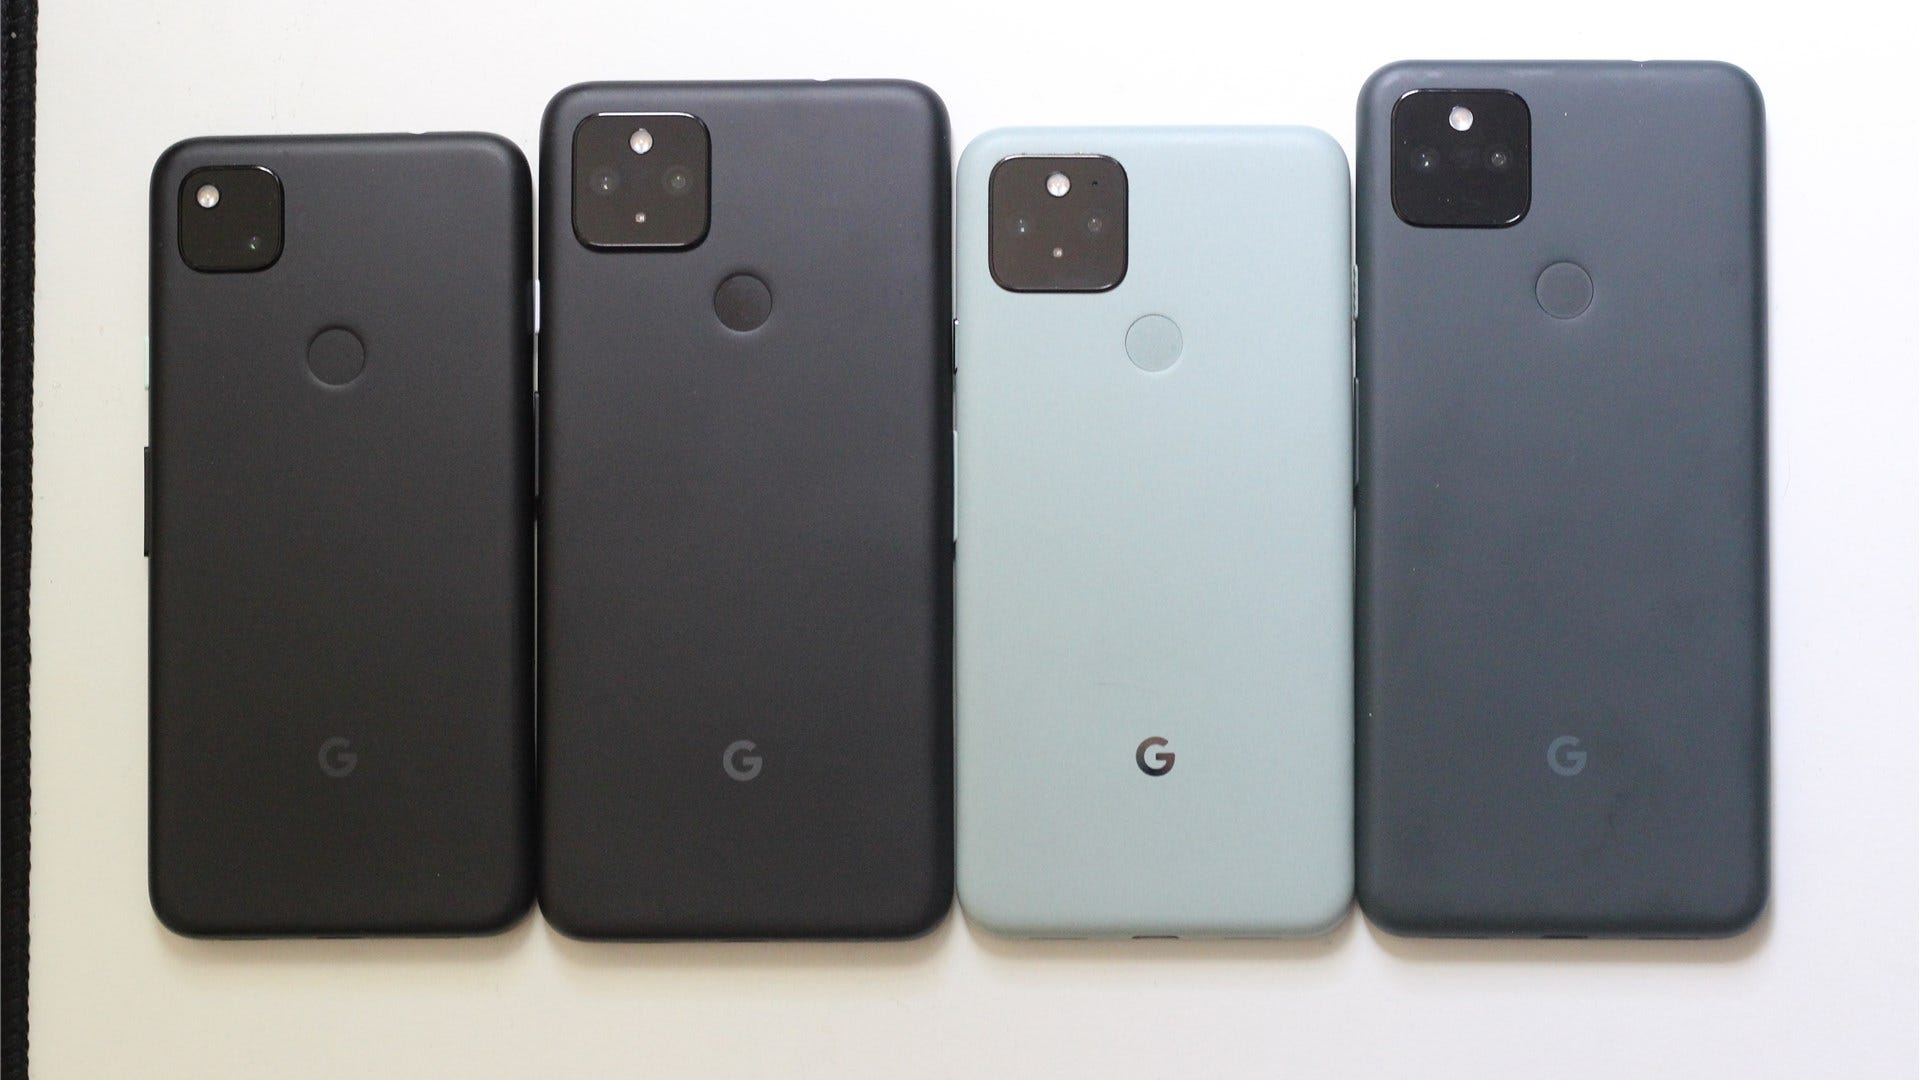 The Pixel 4a, 4a 5G, 5, and 5a side by side